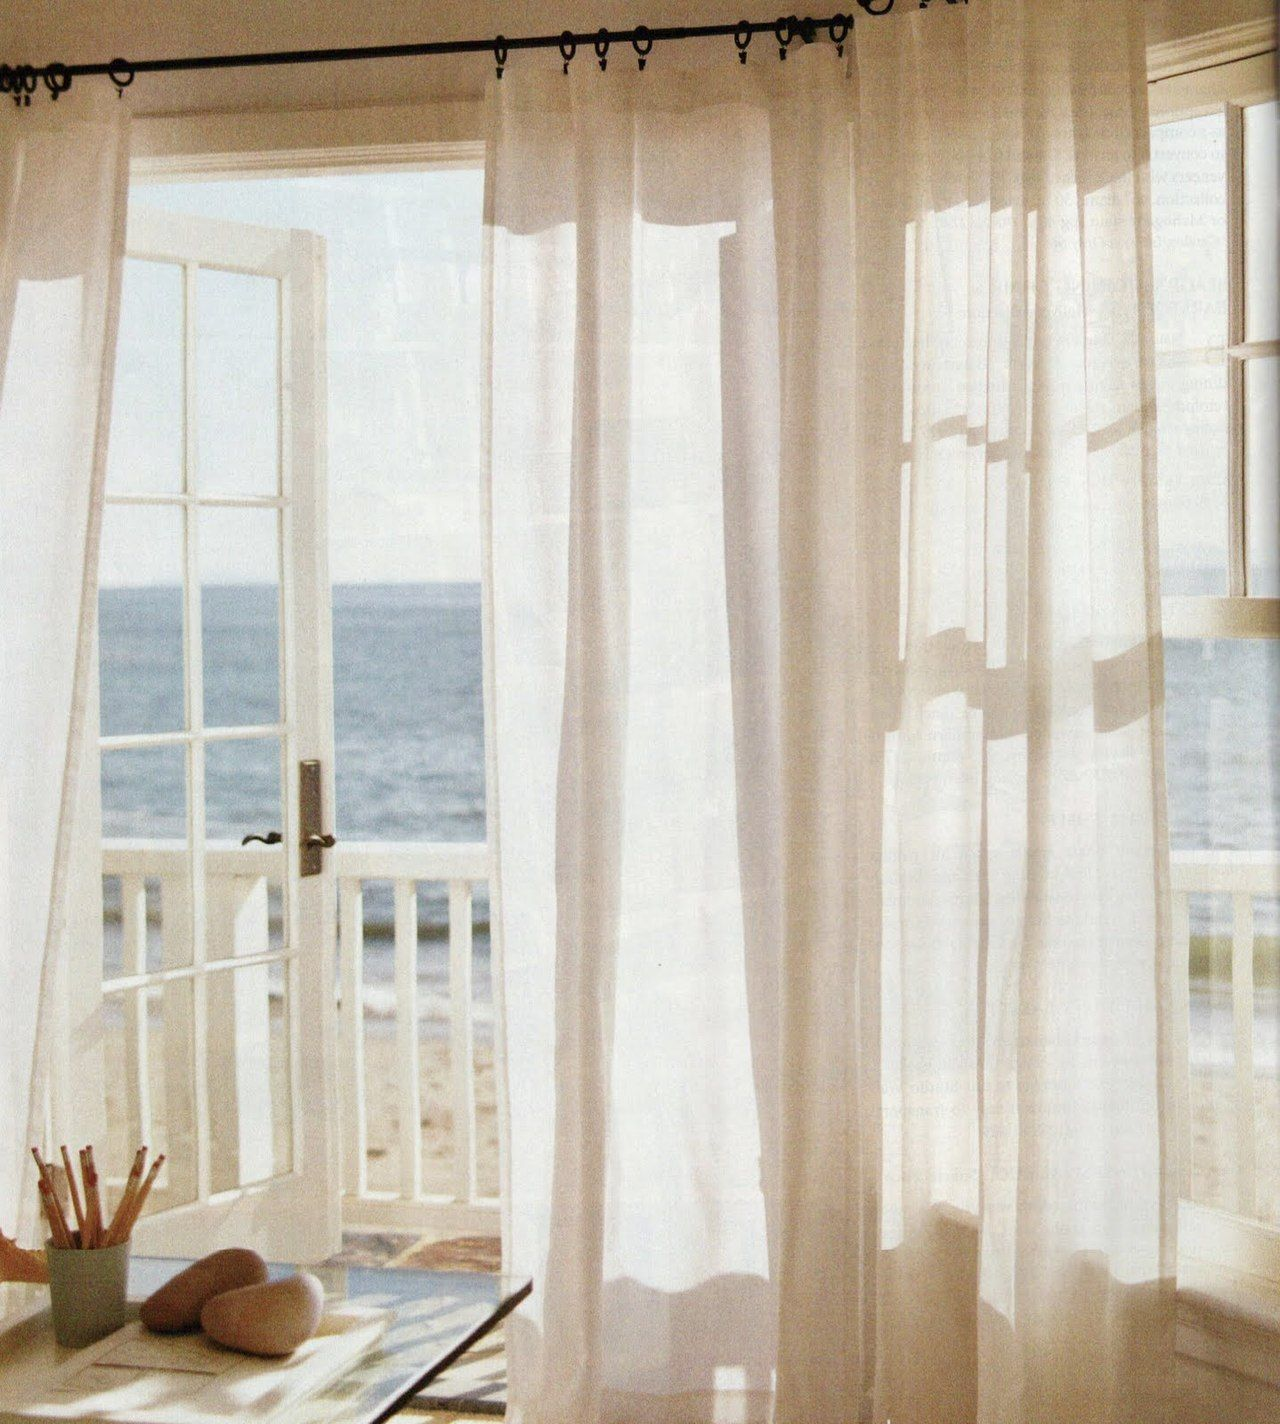 Breezy Home Office Sheer Curtains And French Doors Leading Out